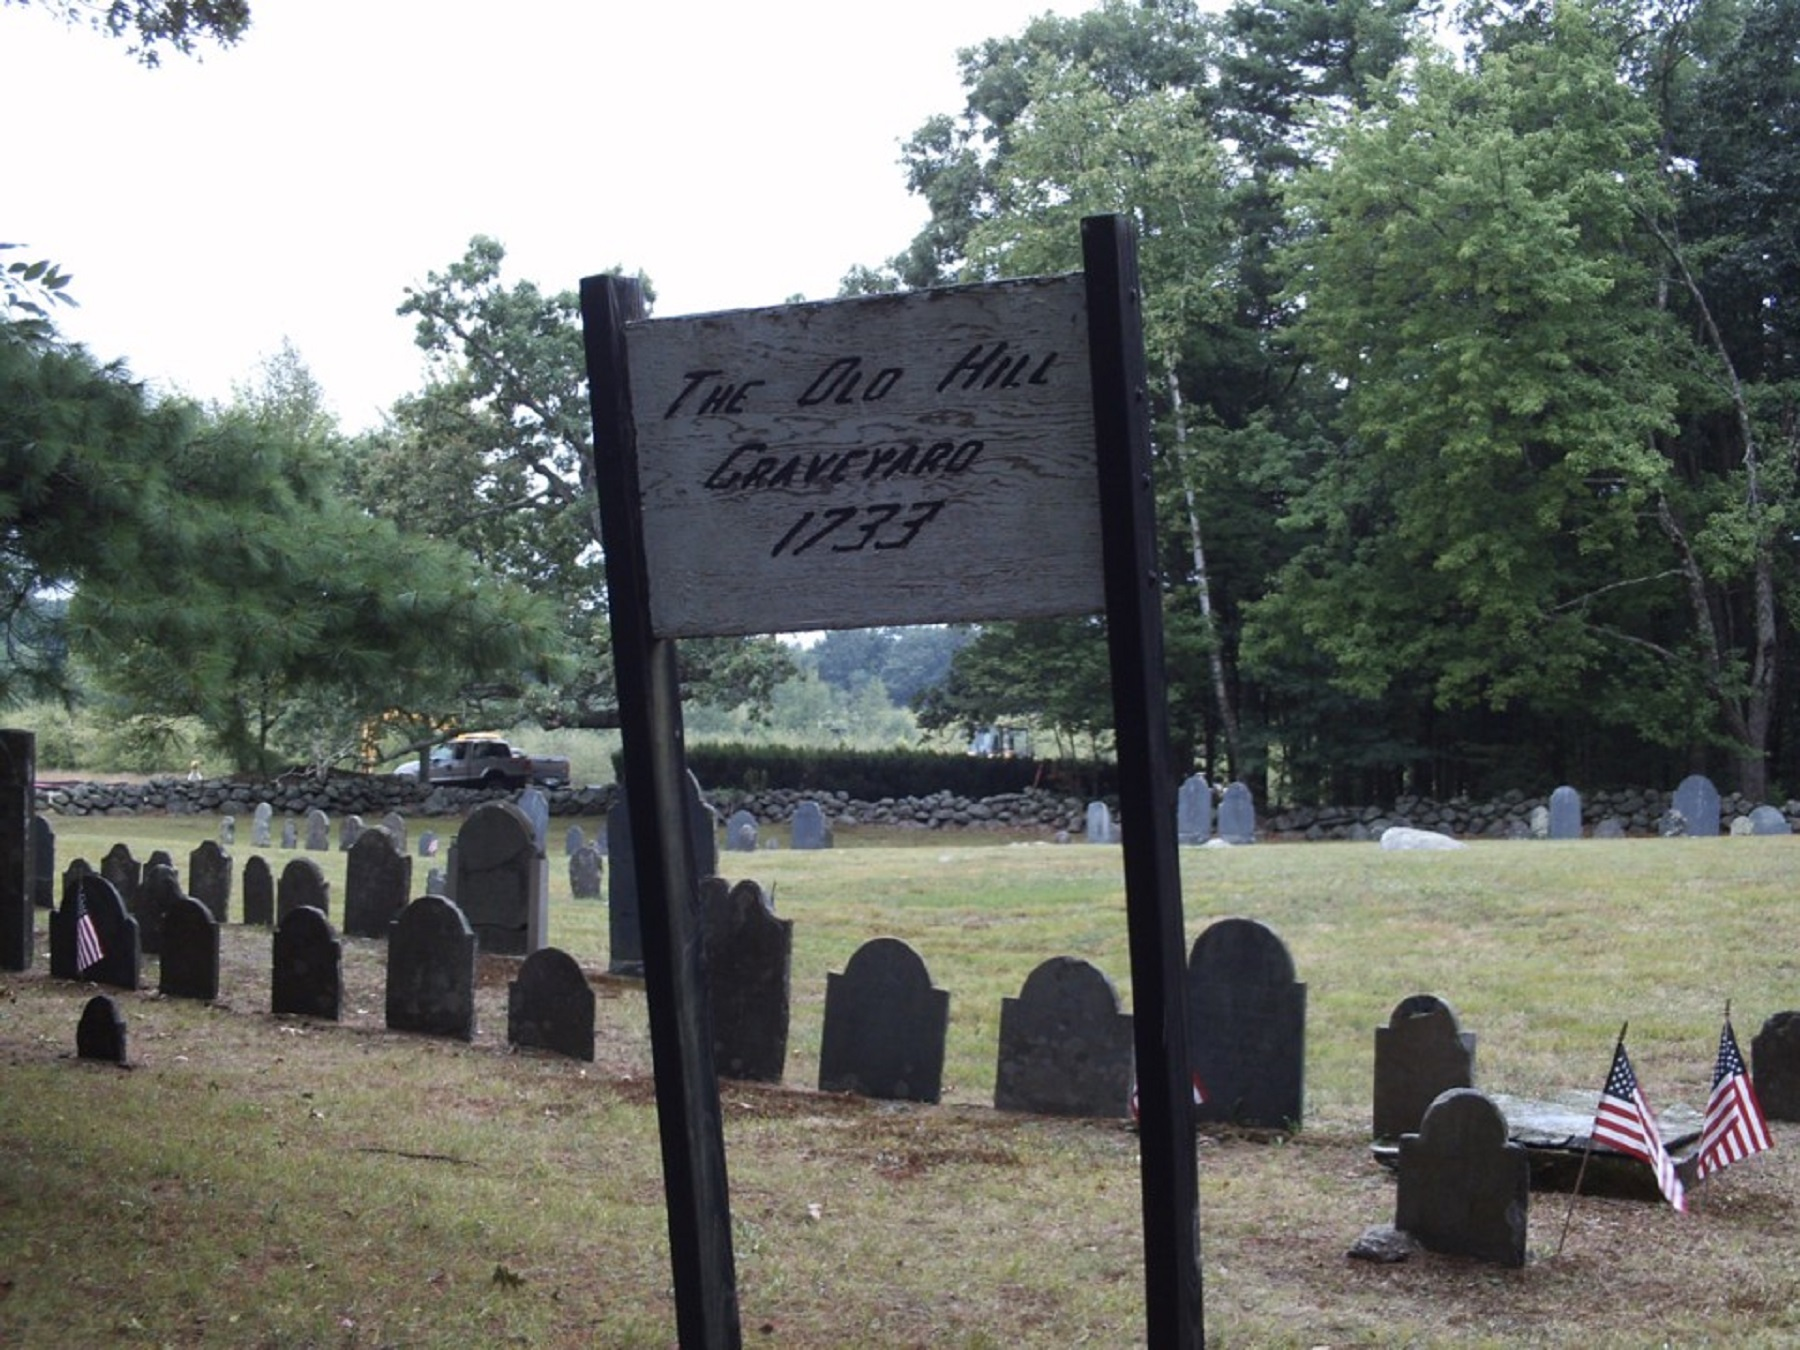 Old Hill Graveyard AKA Pinkerton Cemetery